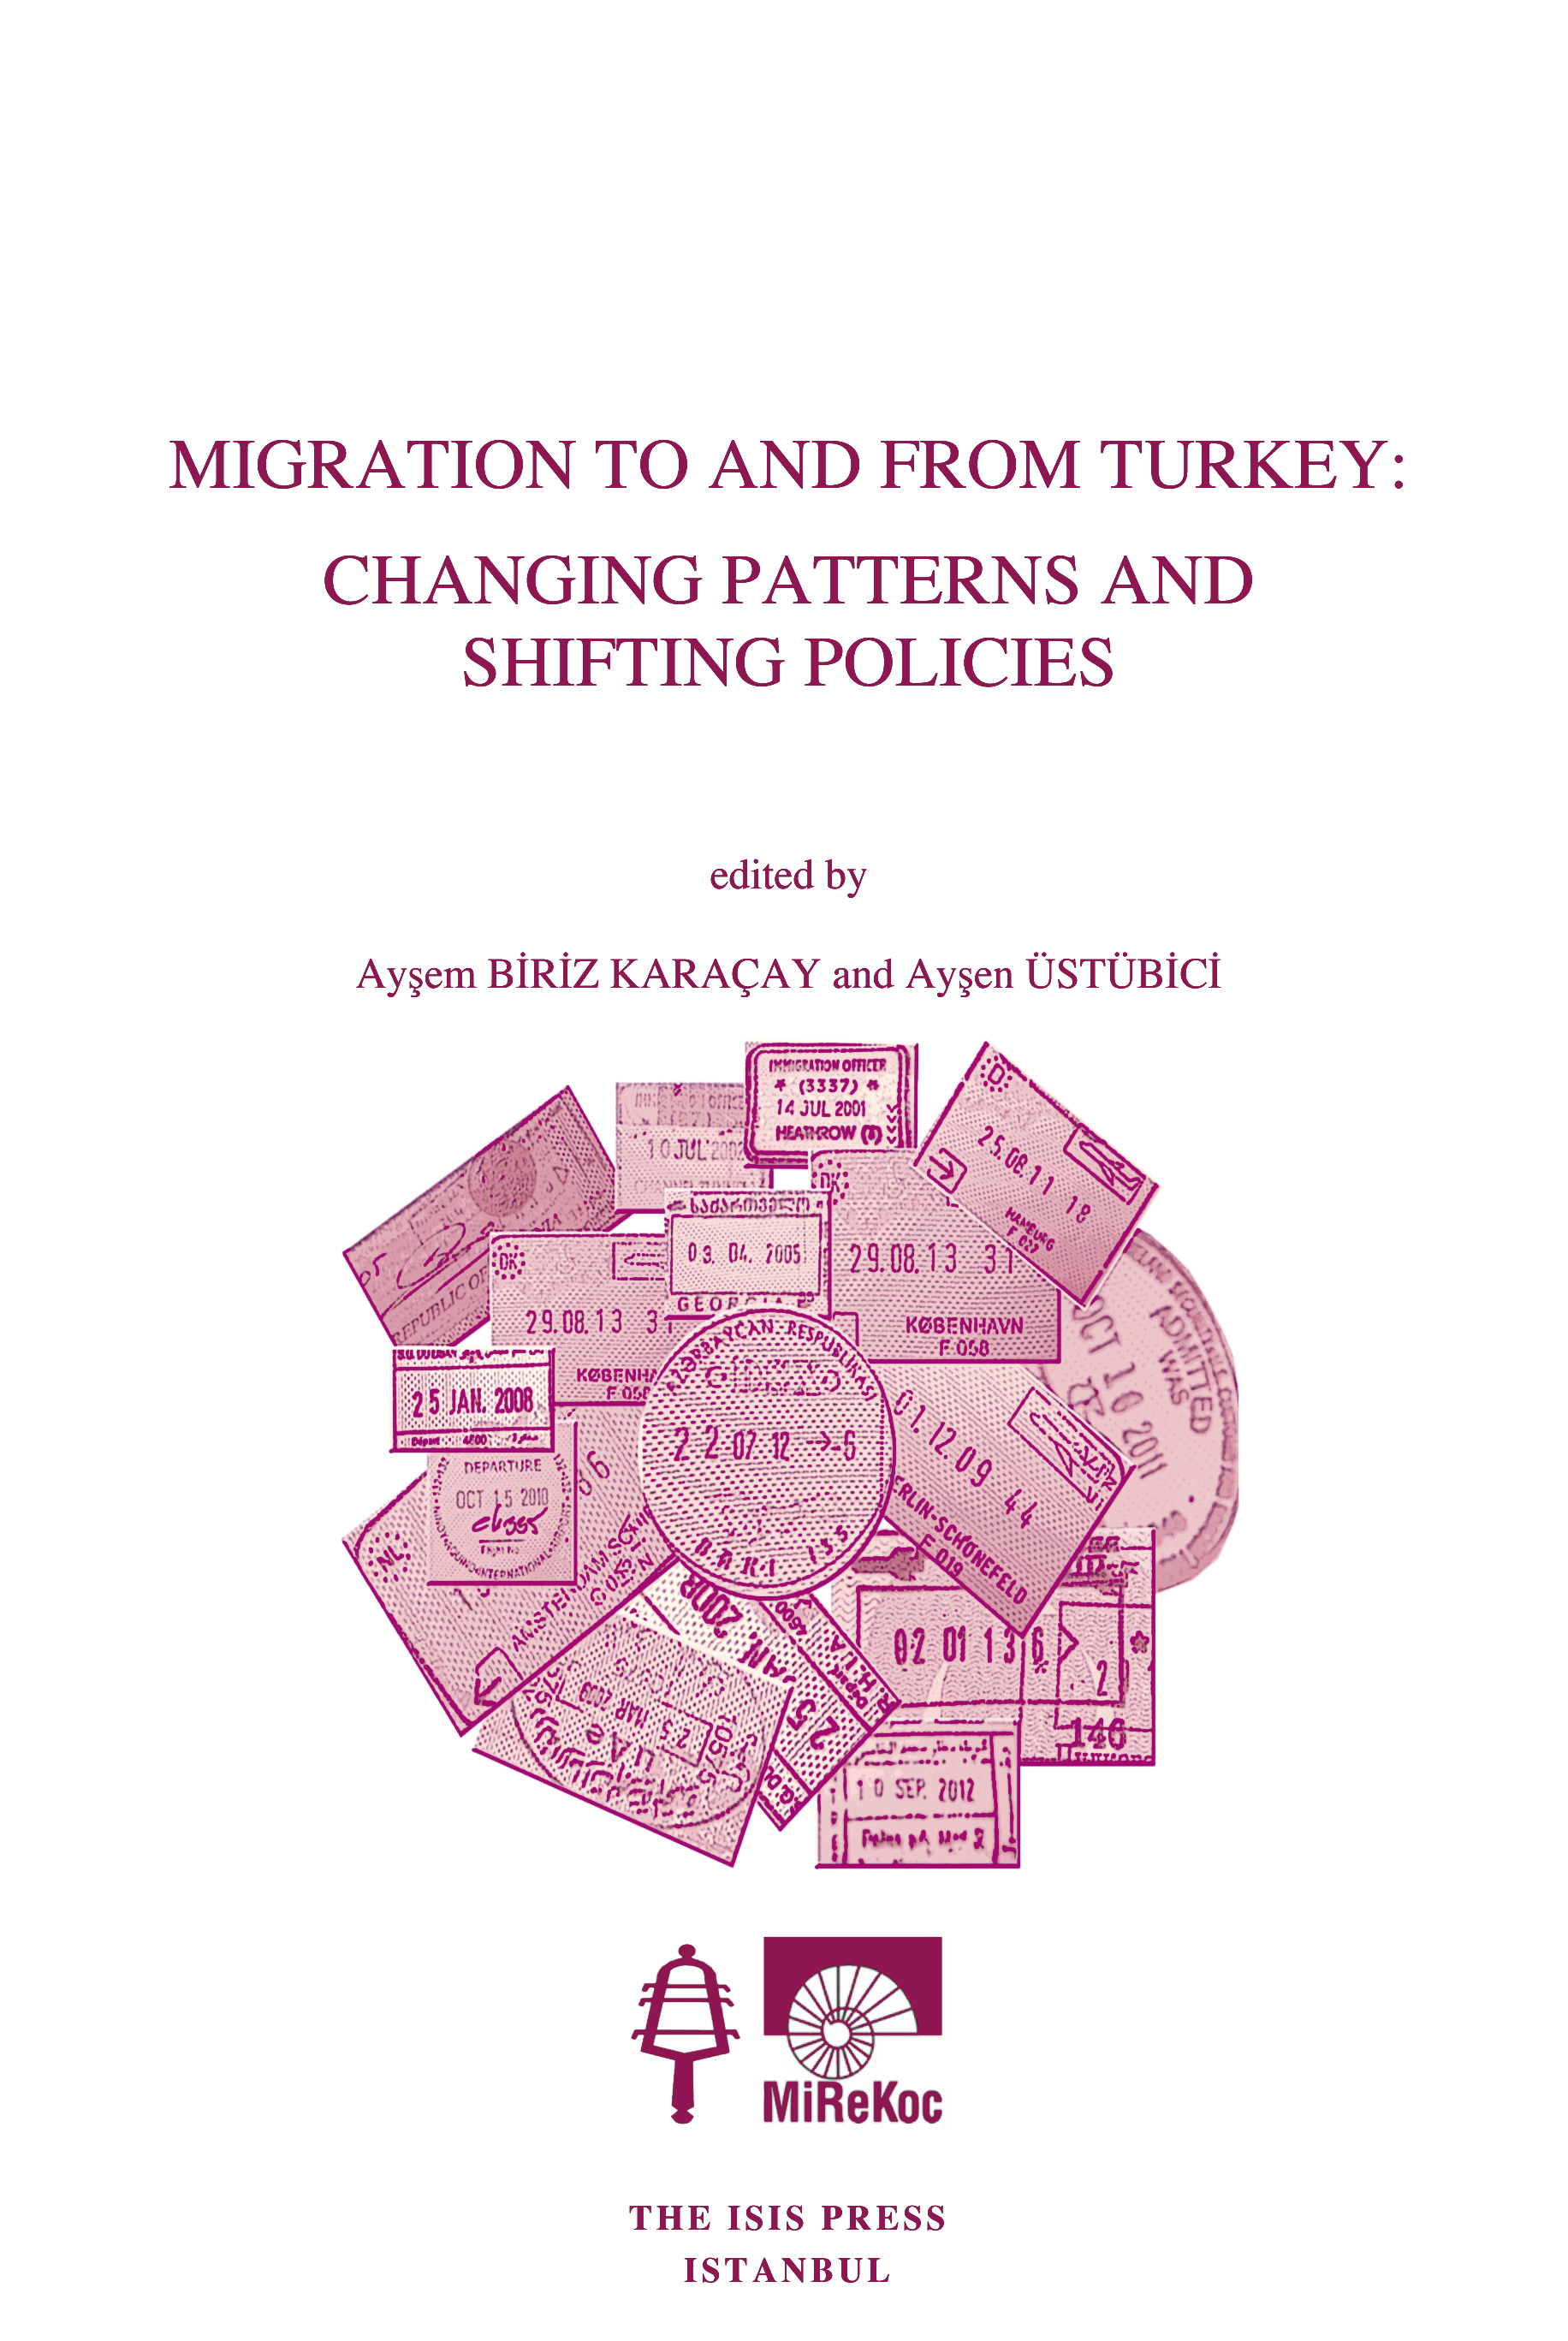 MIGRATION TO AND FROM TURKEY: CHANGING PATTERNS AND SHIFTING POLICIES